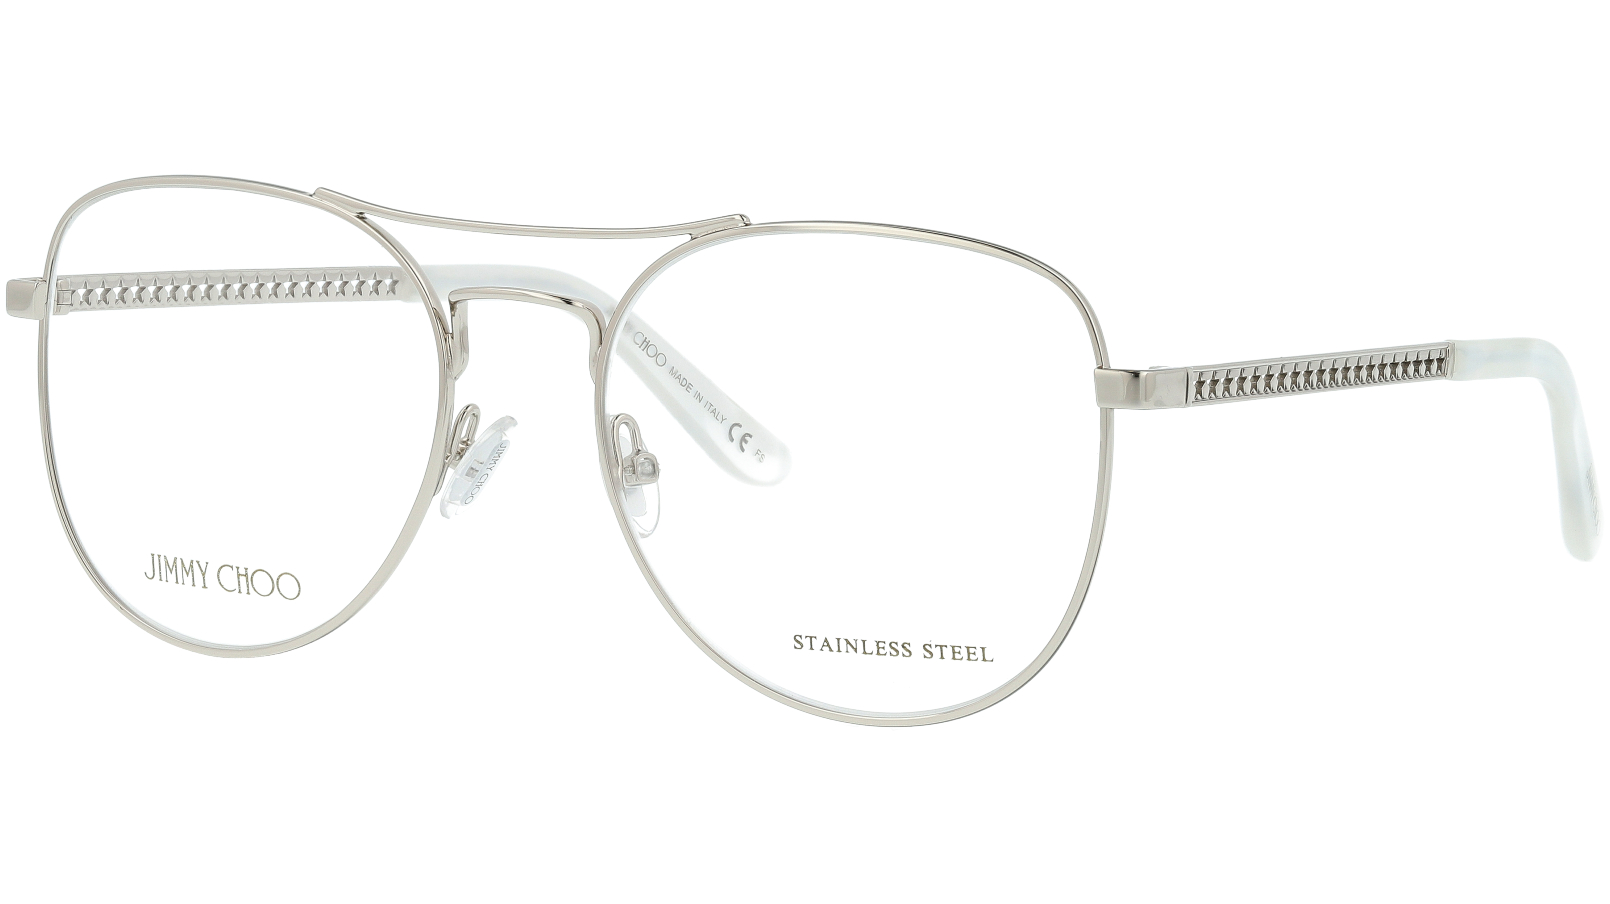 JIMMY CHOO JC200 YB7 54 SILVER Glasses